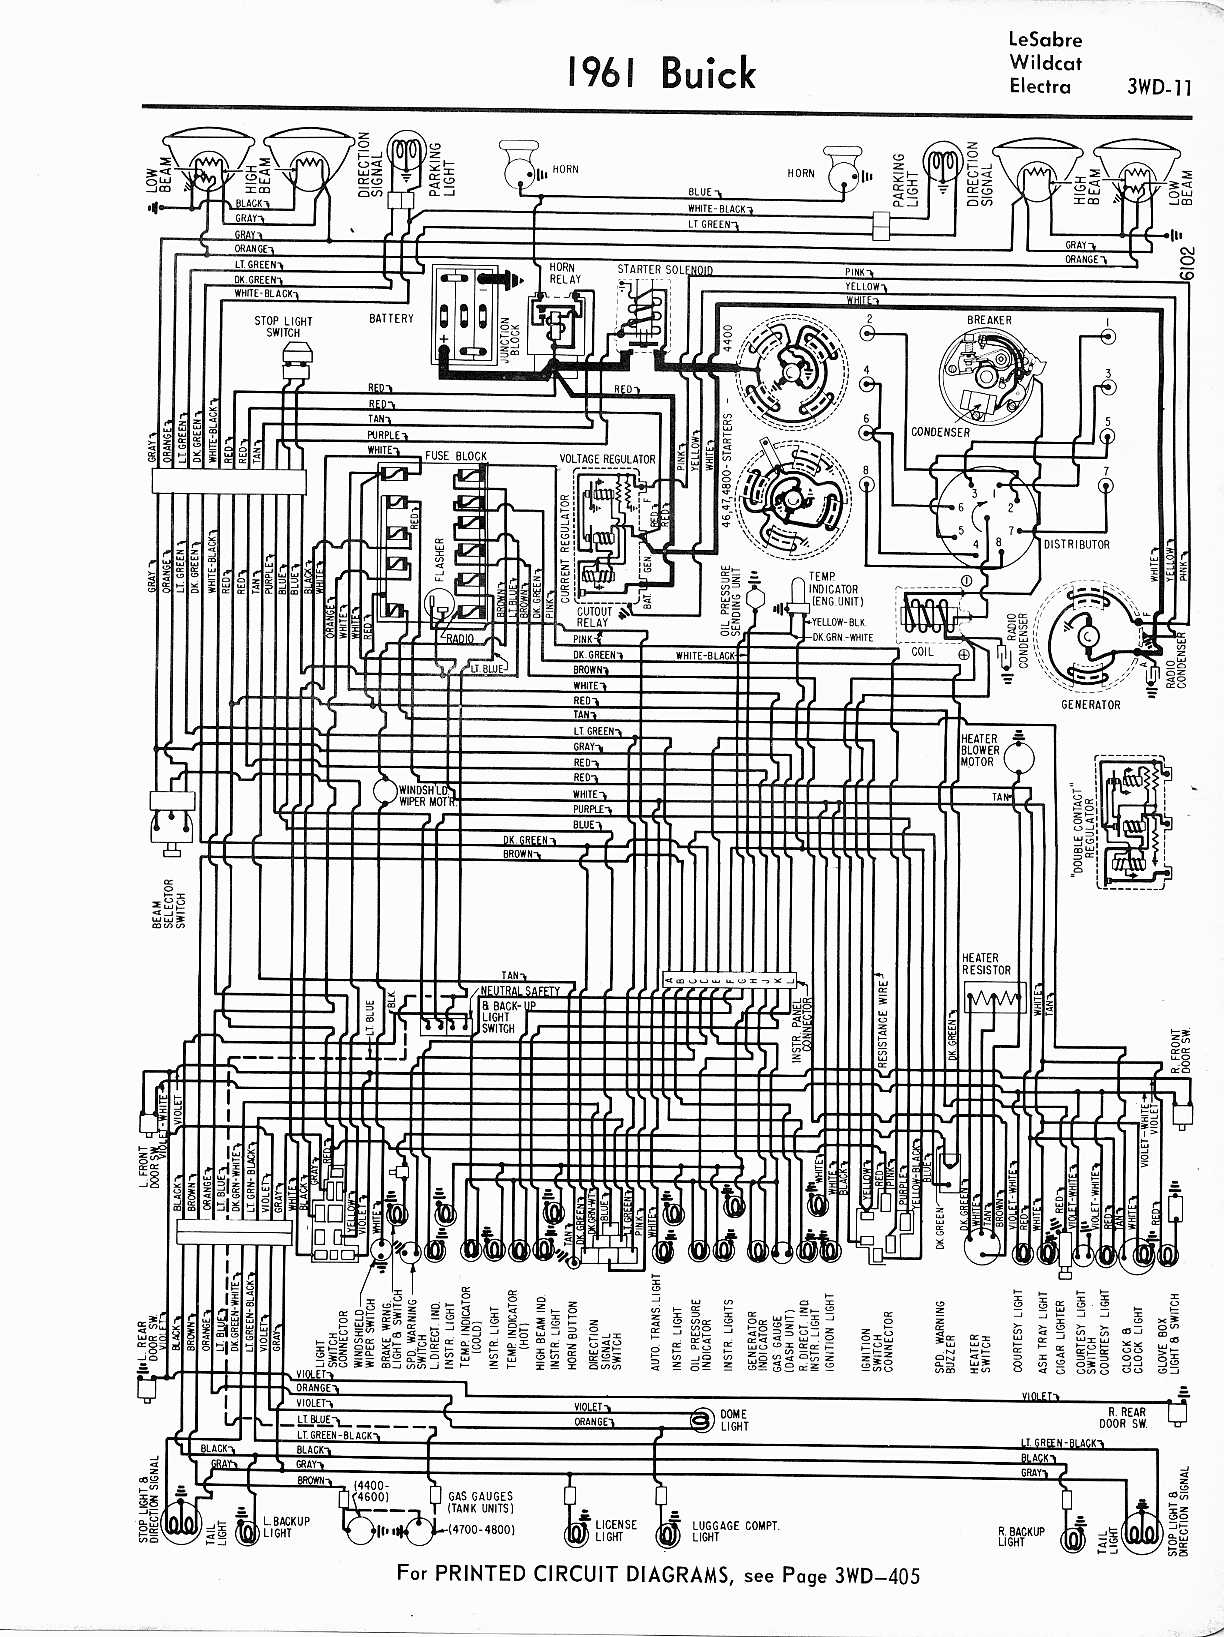 MWireBuic65_3WD 011 buick wiring diagrams 1957 1965 2000 buick century power window wiring diagram at et-consult.org